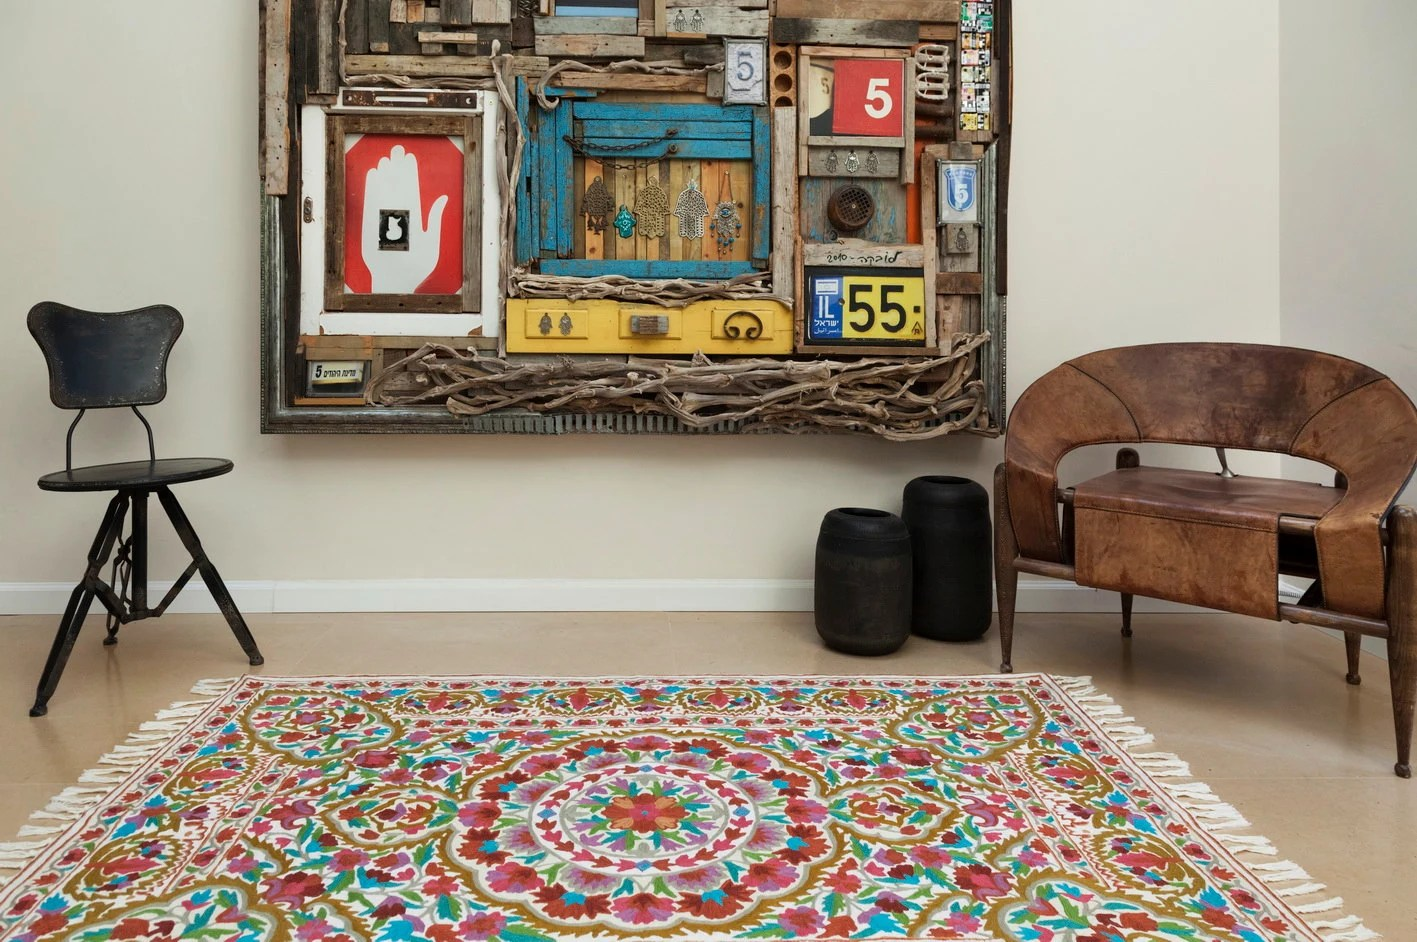 Rugs Online Sale Mandala Rug Floral Area Rugs 4x6 Area Rug Cool Rugs Rugs Online Rug For Sale Affordable Area Rugs Free Shipping